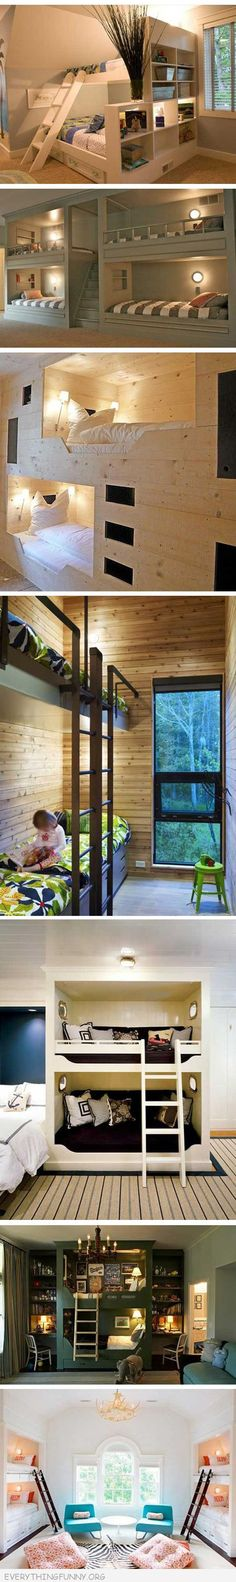 funny awesome bunk beds ideas